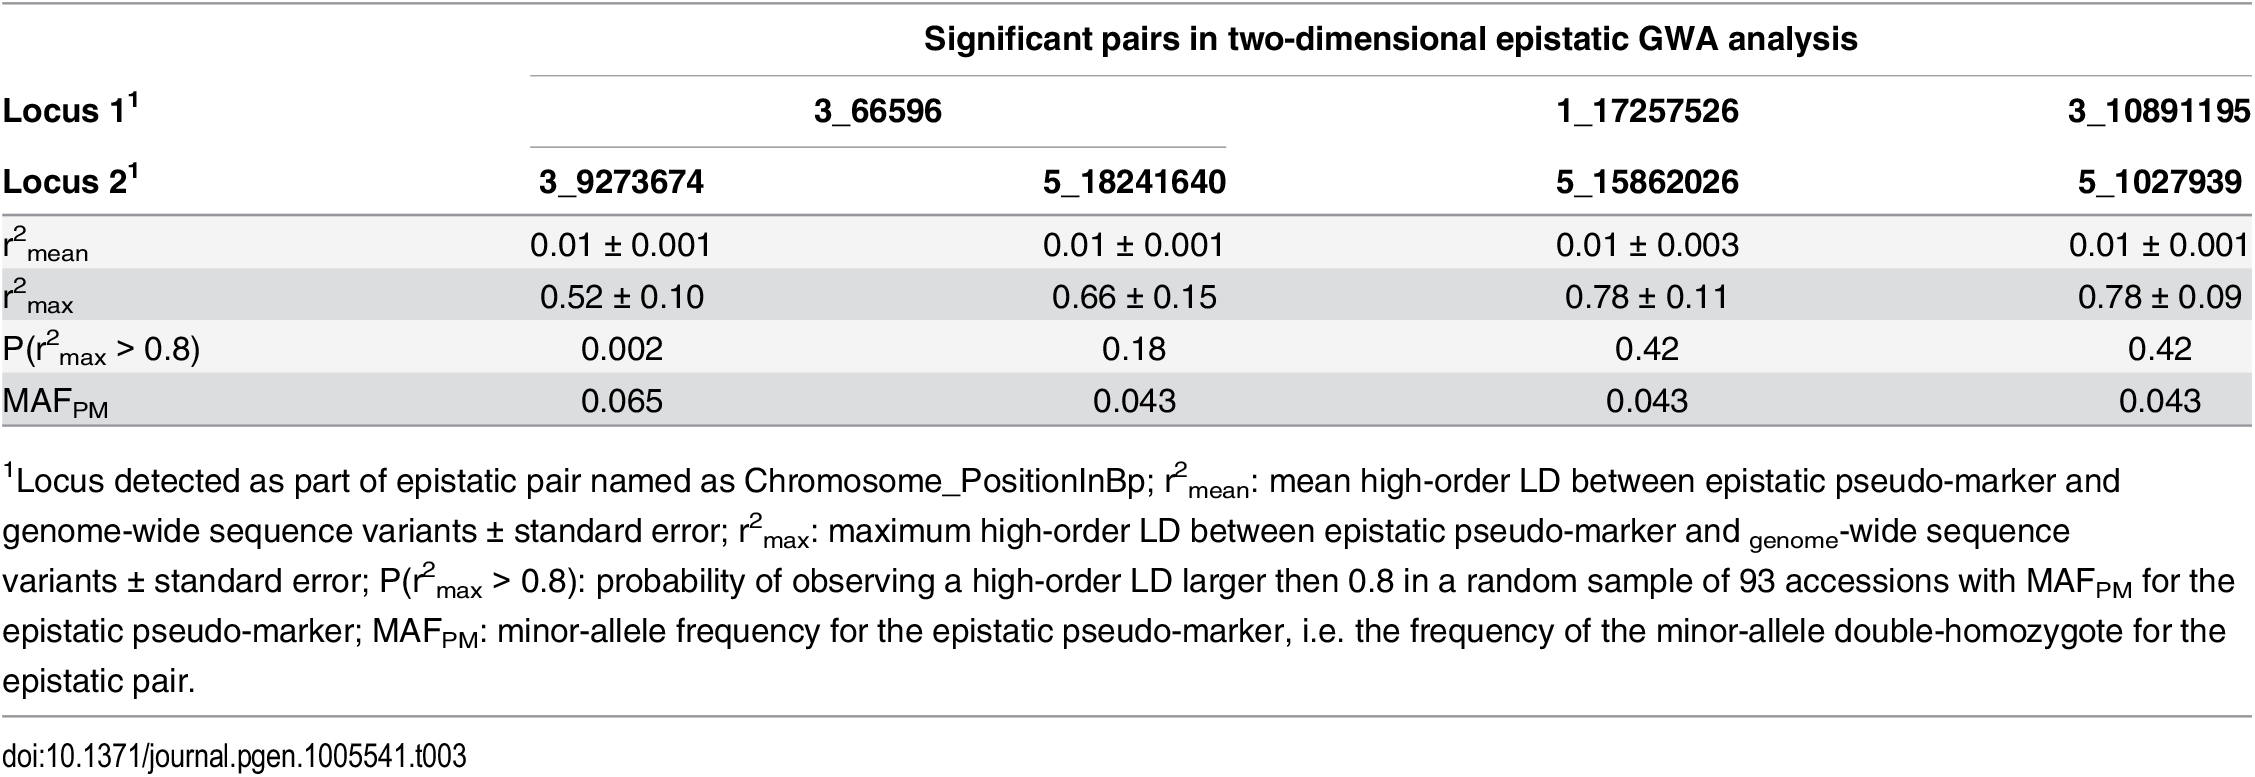 "Estimation of the risk that epistatic pairs identified in the GWA analysis are due to high-order LD to unobserved functional variants (""apparent epistasis"")."